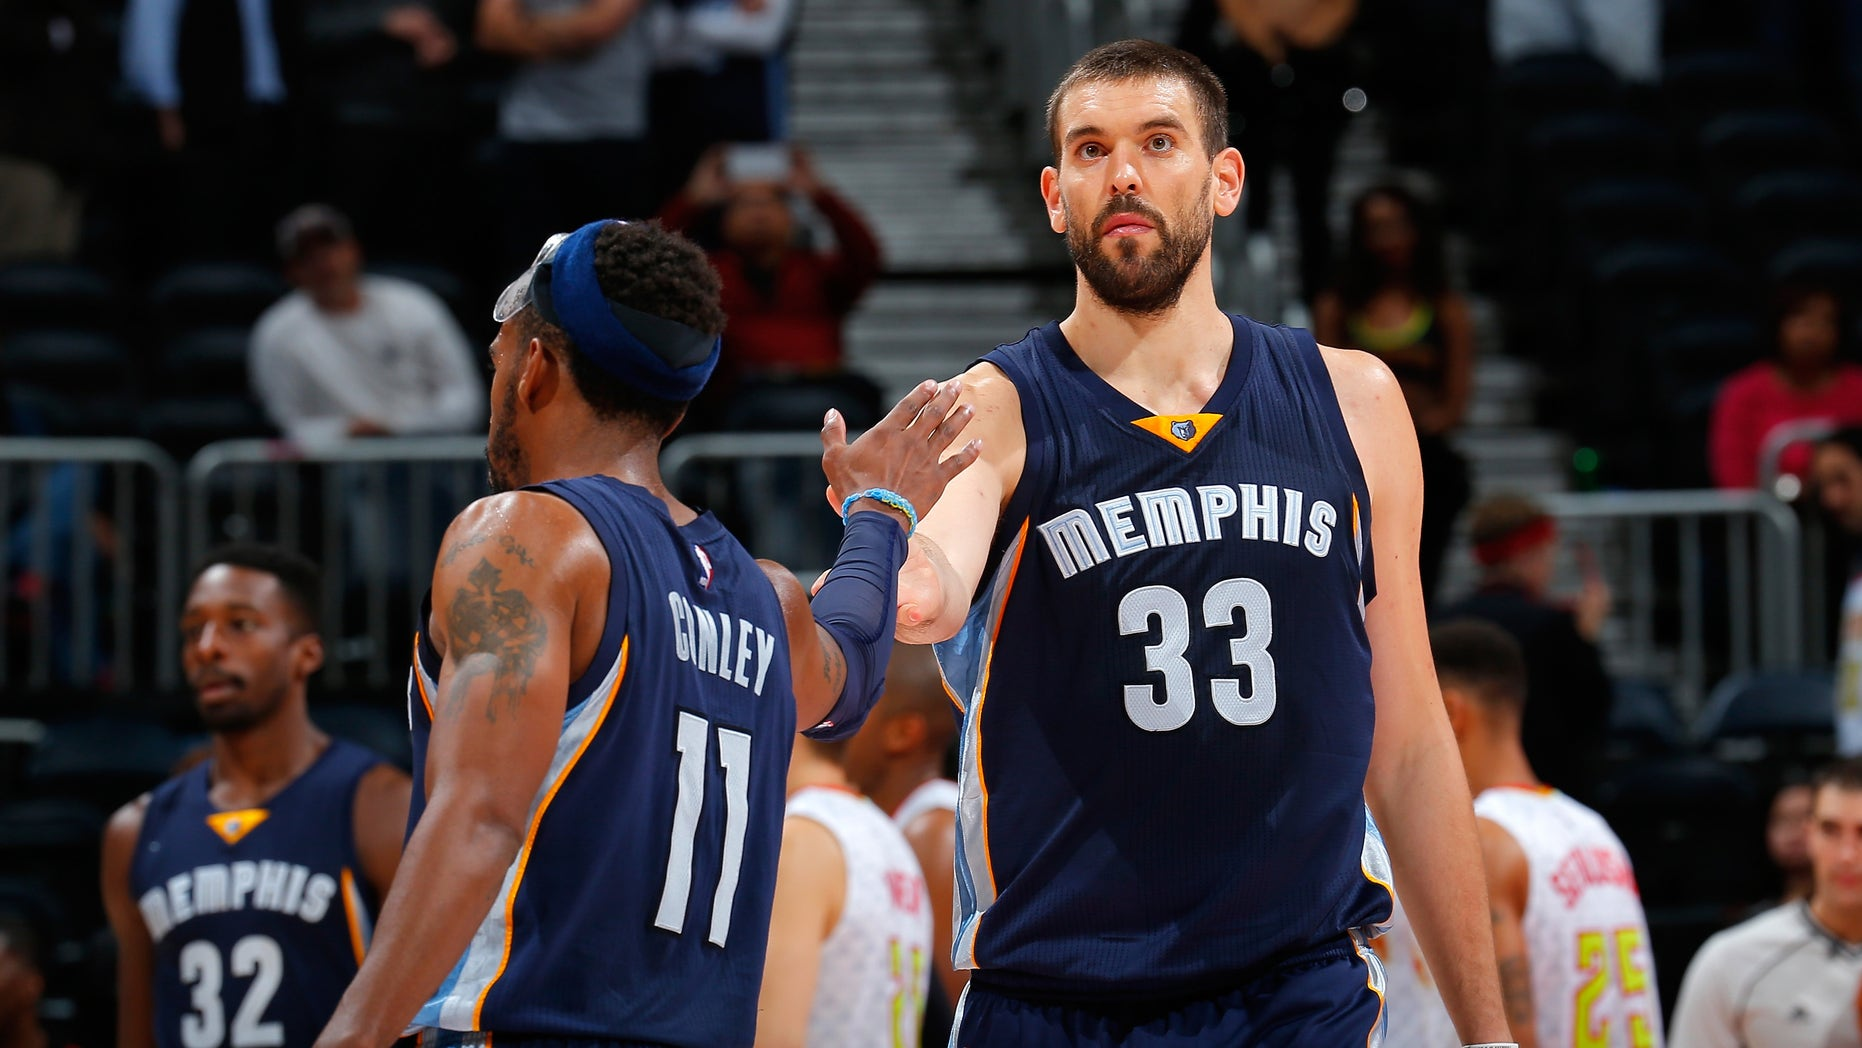 Mike Conley and Marc Gasol at Philips Arena on October 21, 2015 in Atlanta, Georgia.